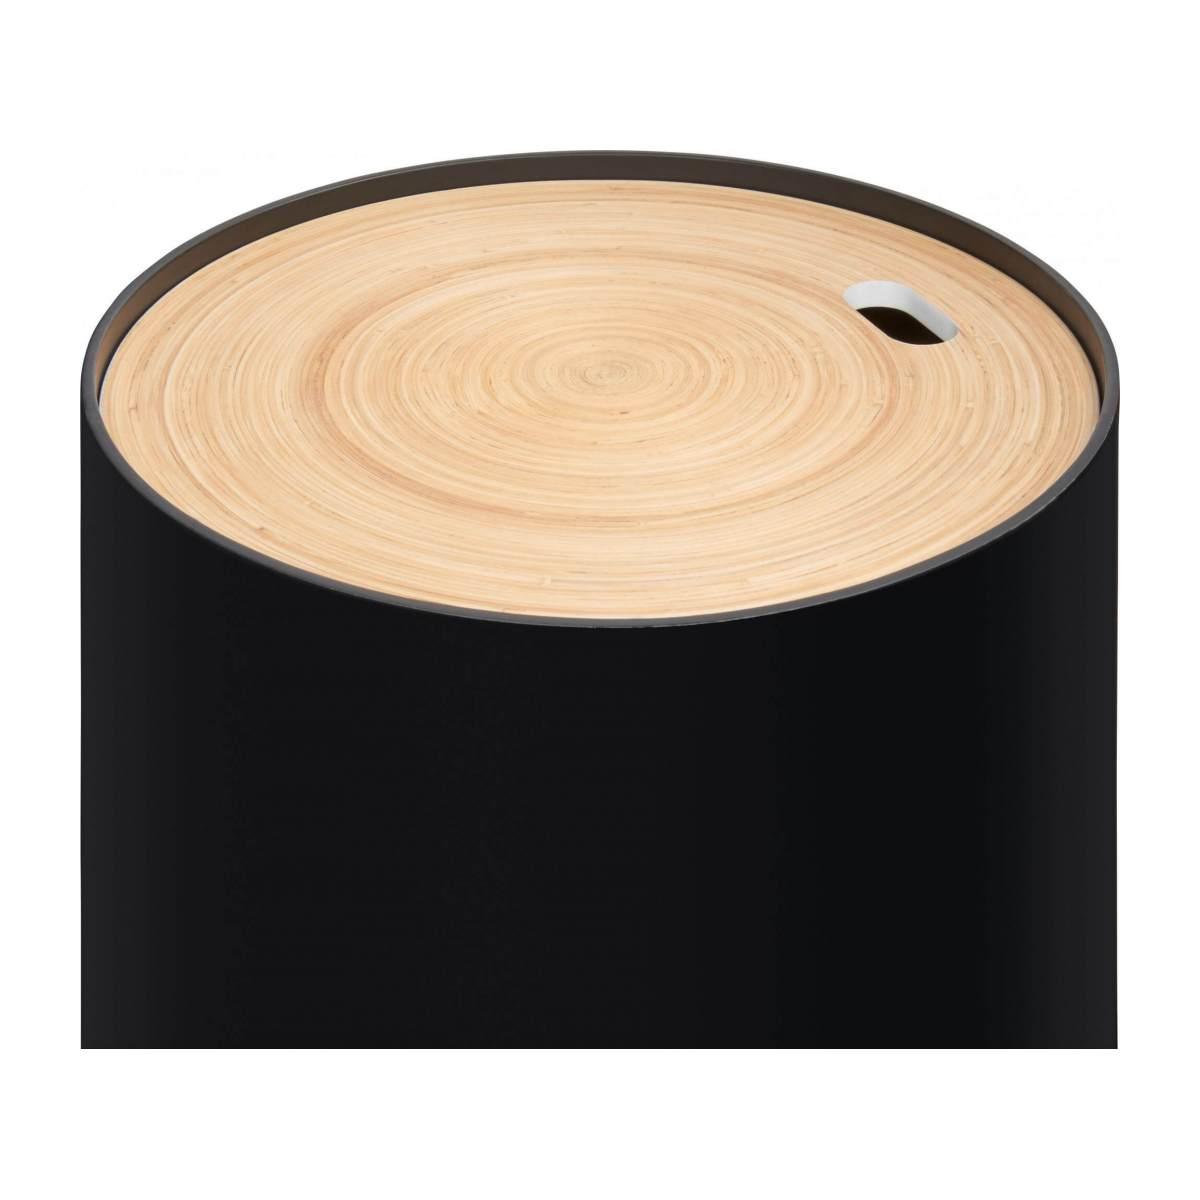 Black bamboo side table 40cm n°5